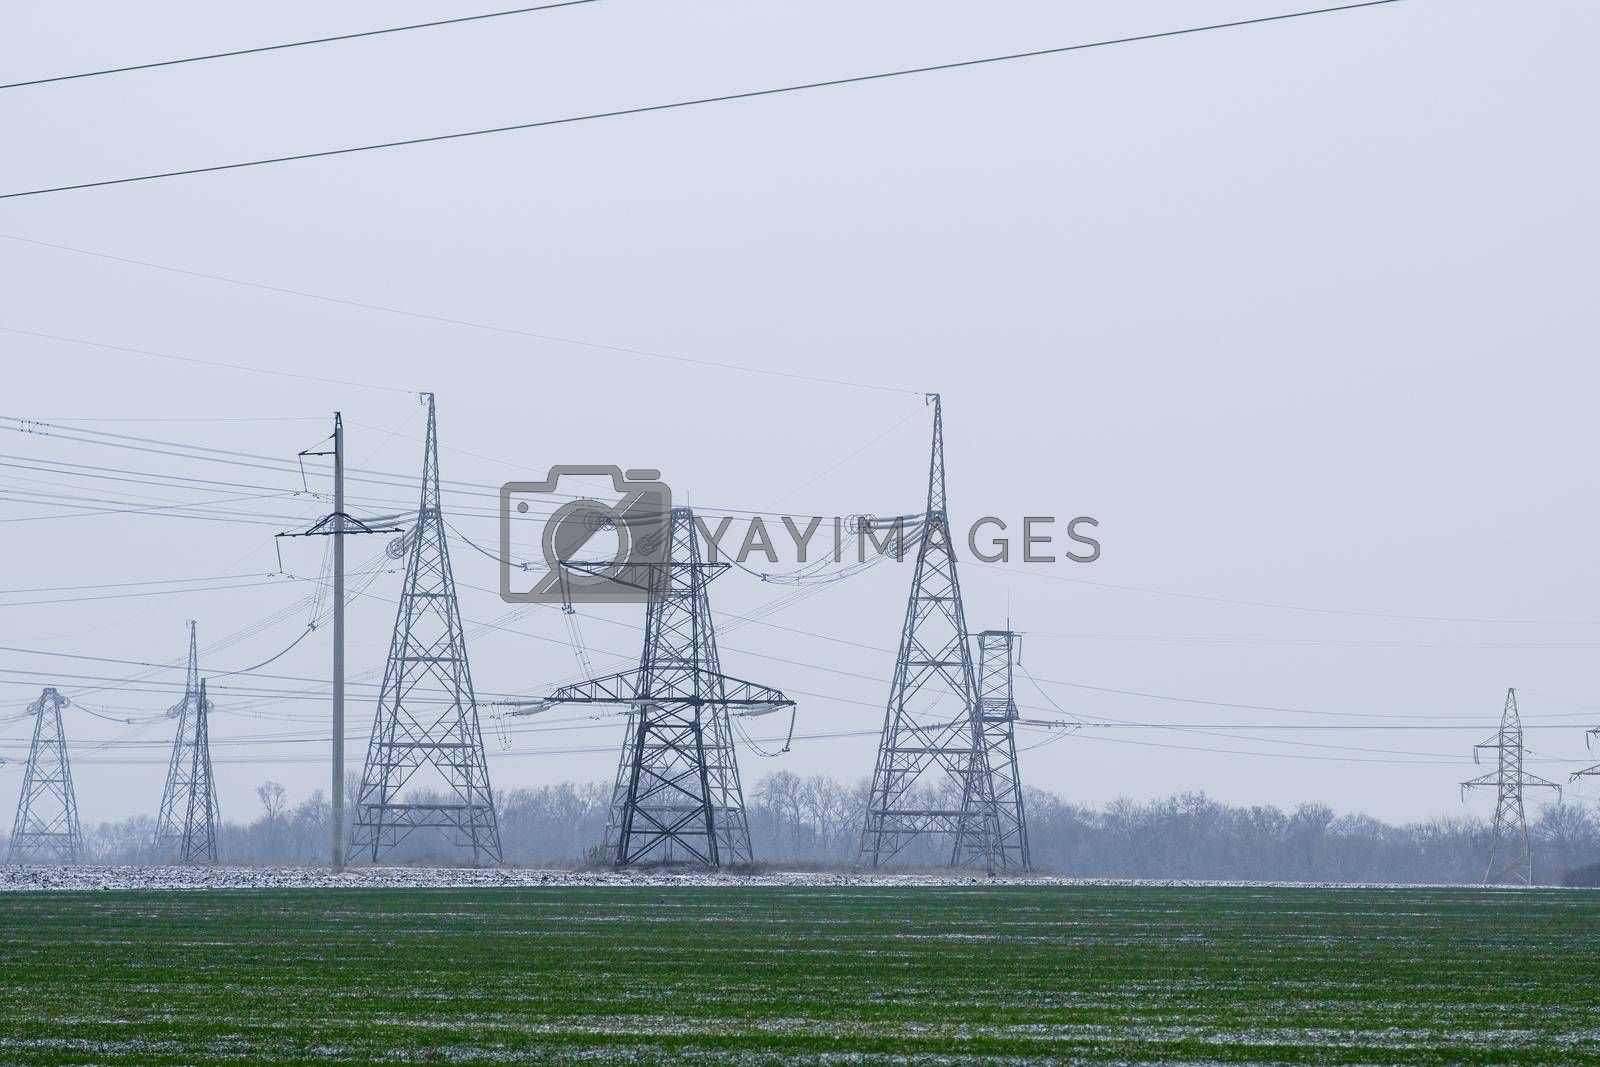 a field of winter wheat. in the background, high-voltage power lines. High quality photo